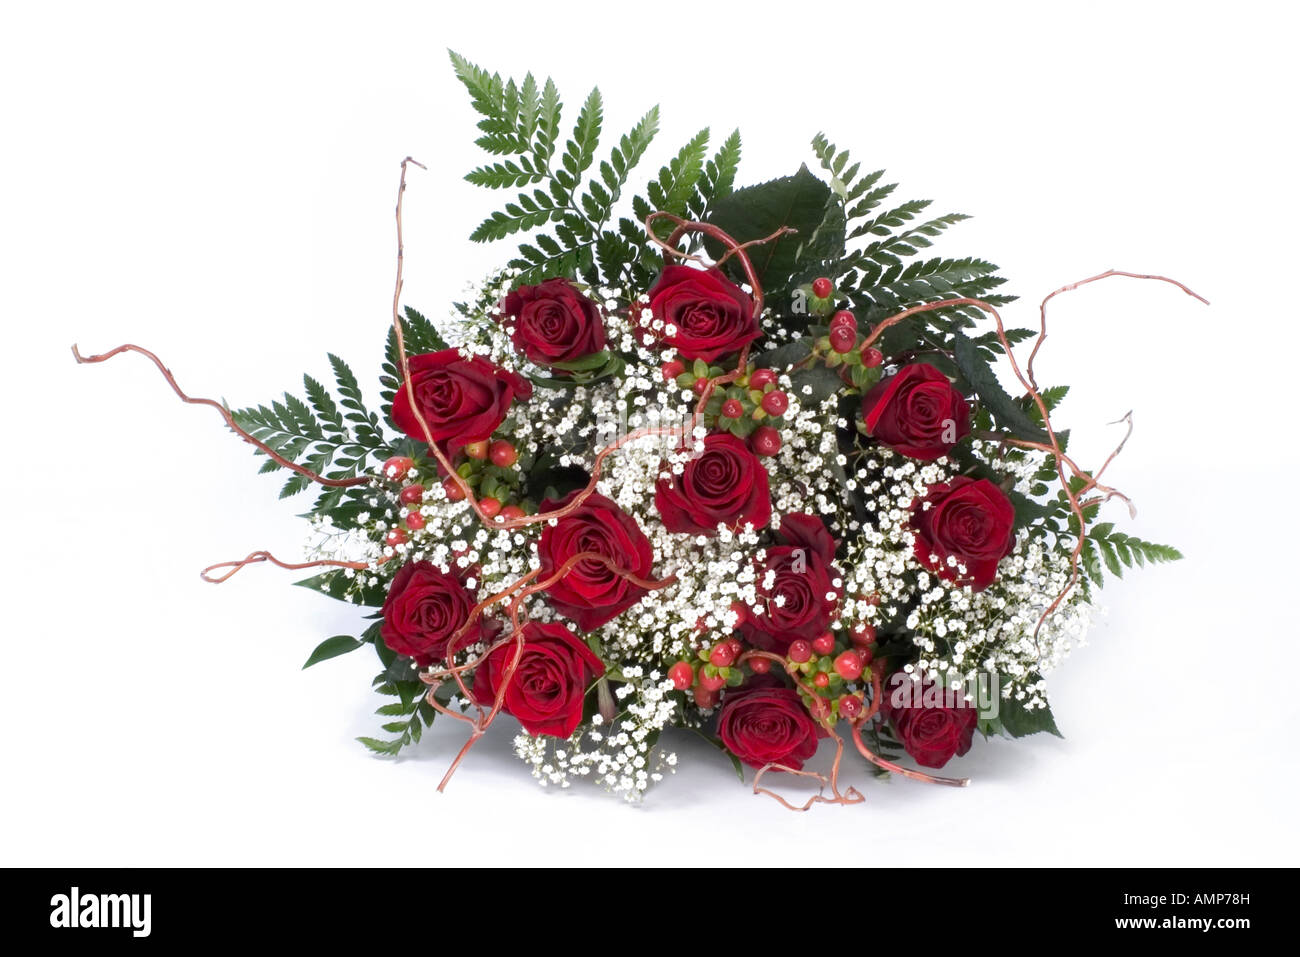 Red Rose Bouquet Babys Breath Stock Photos & Red Rose Bouquet Babys ...